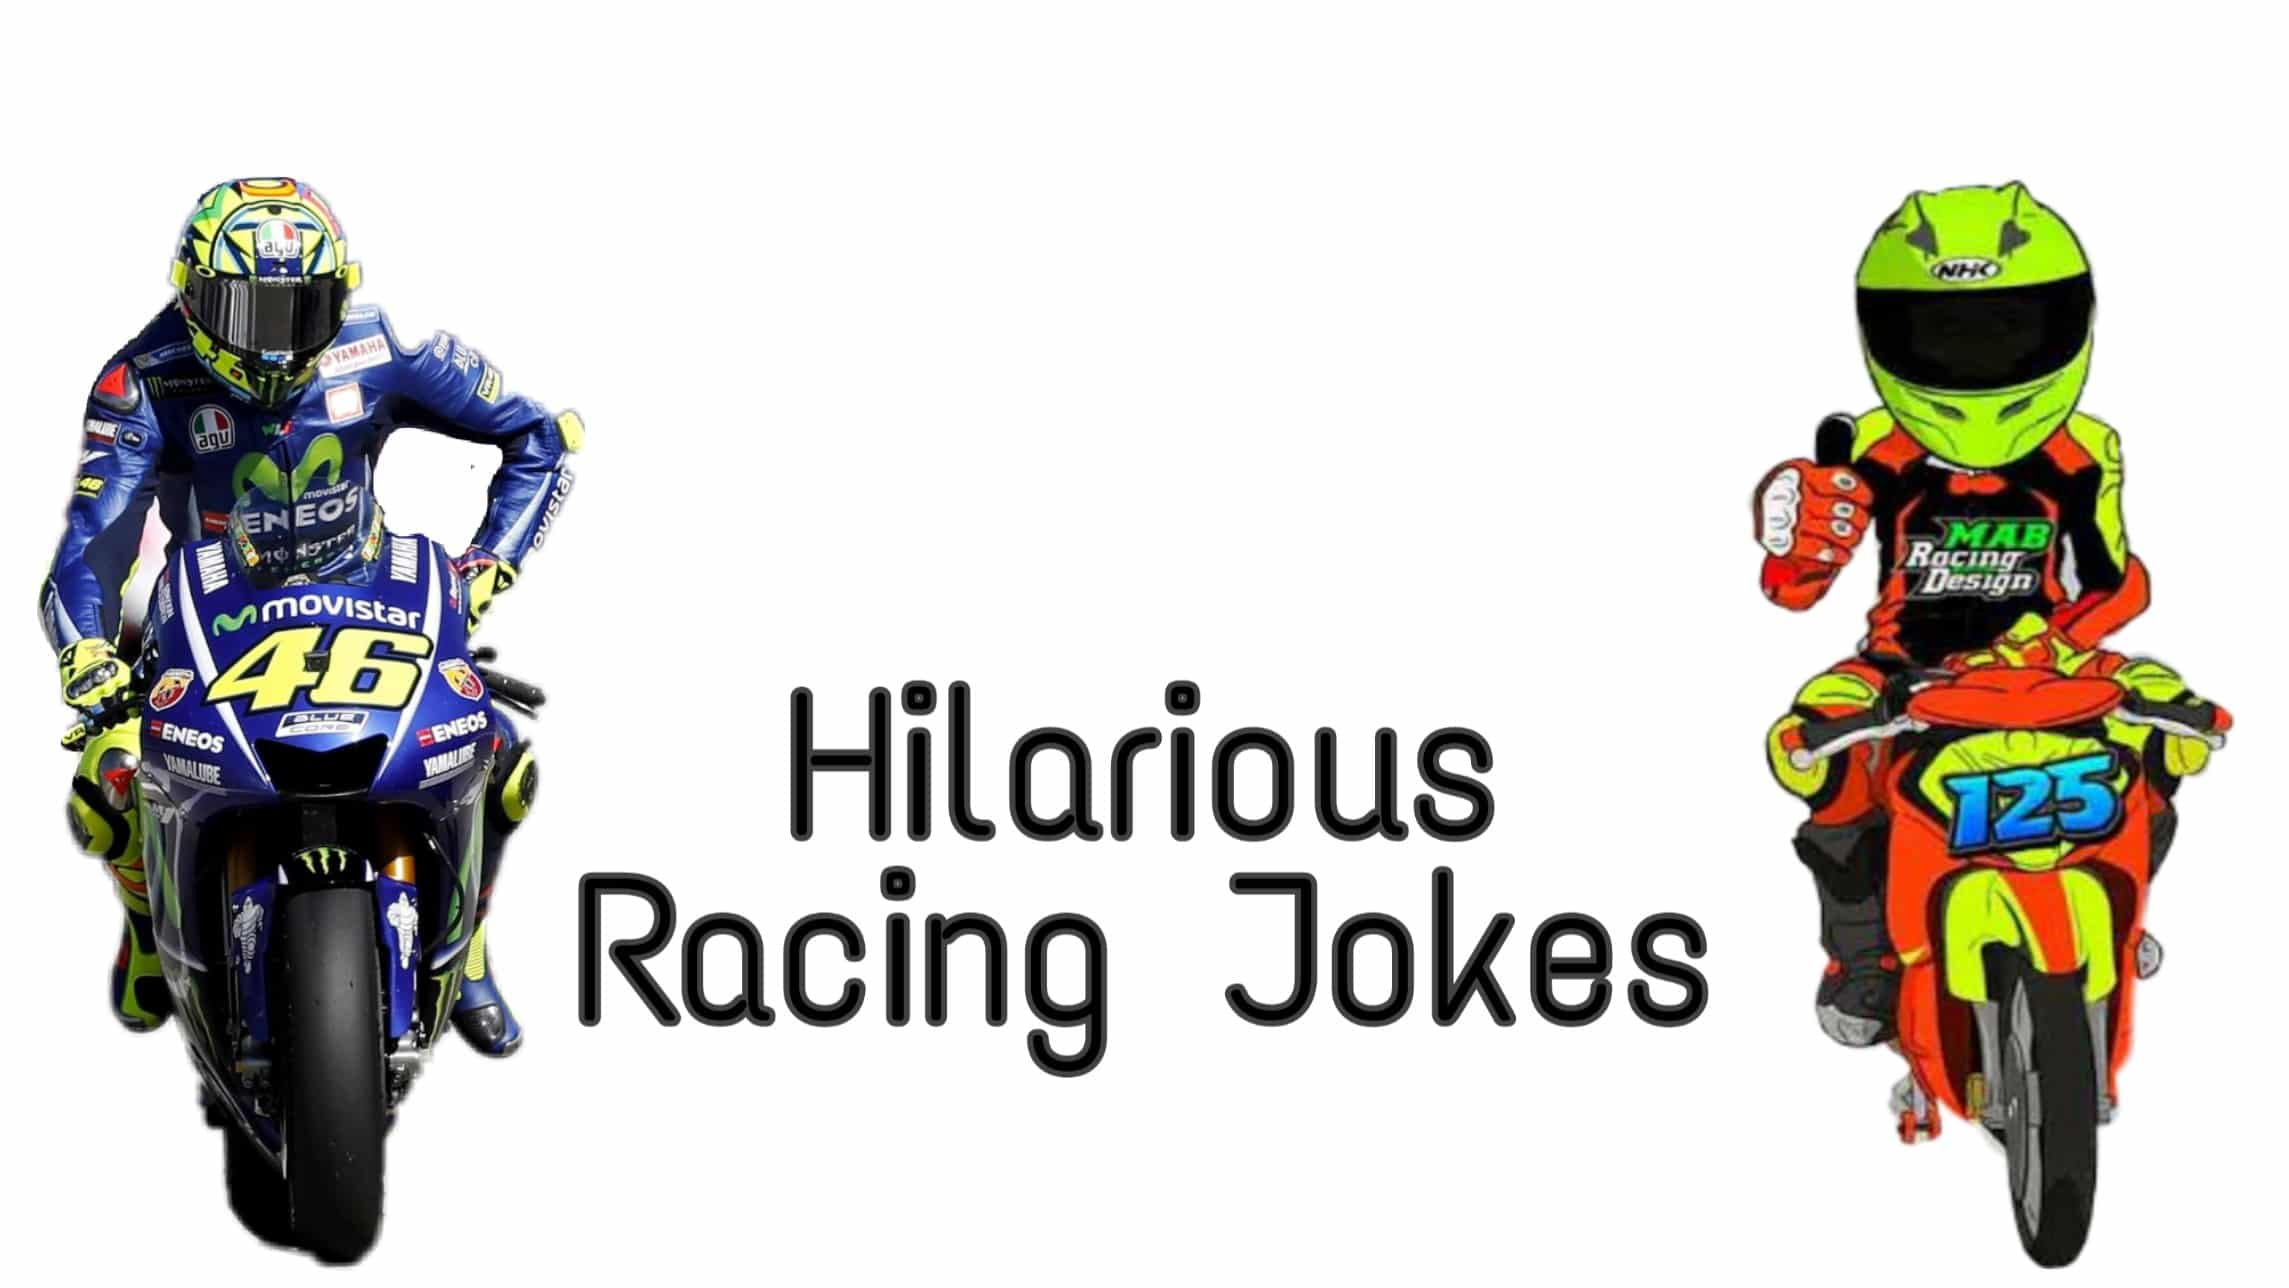 55 Racing Jokes Which Will Have You Rolling Over